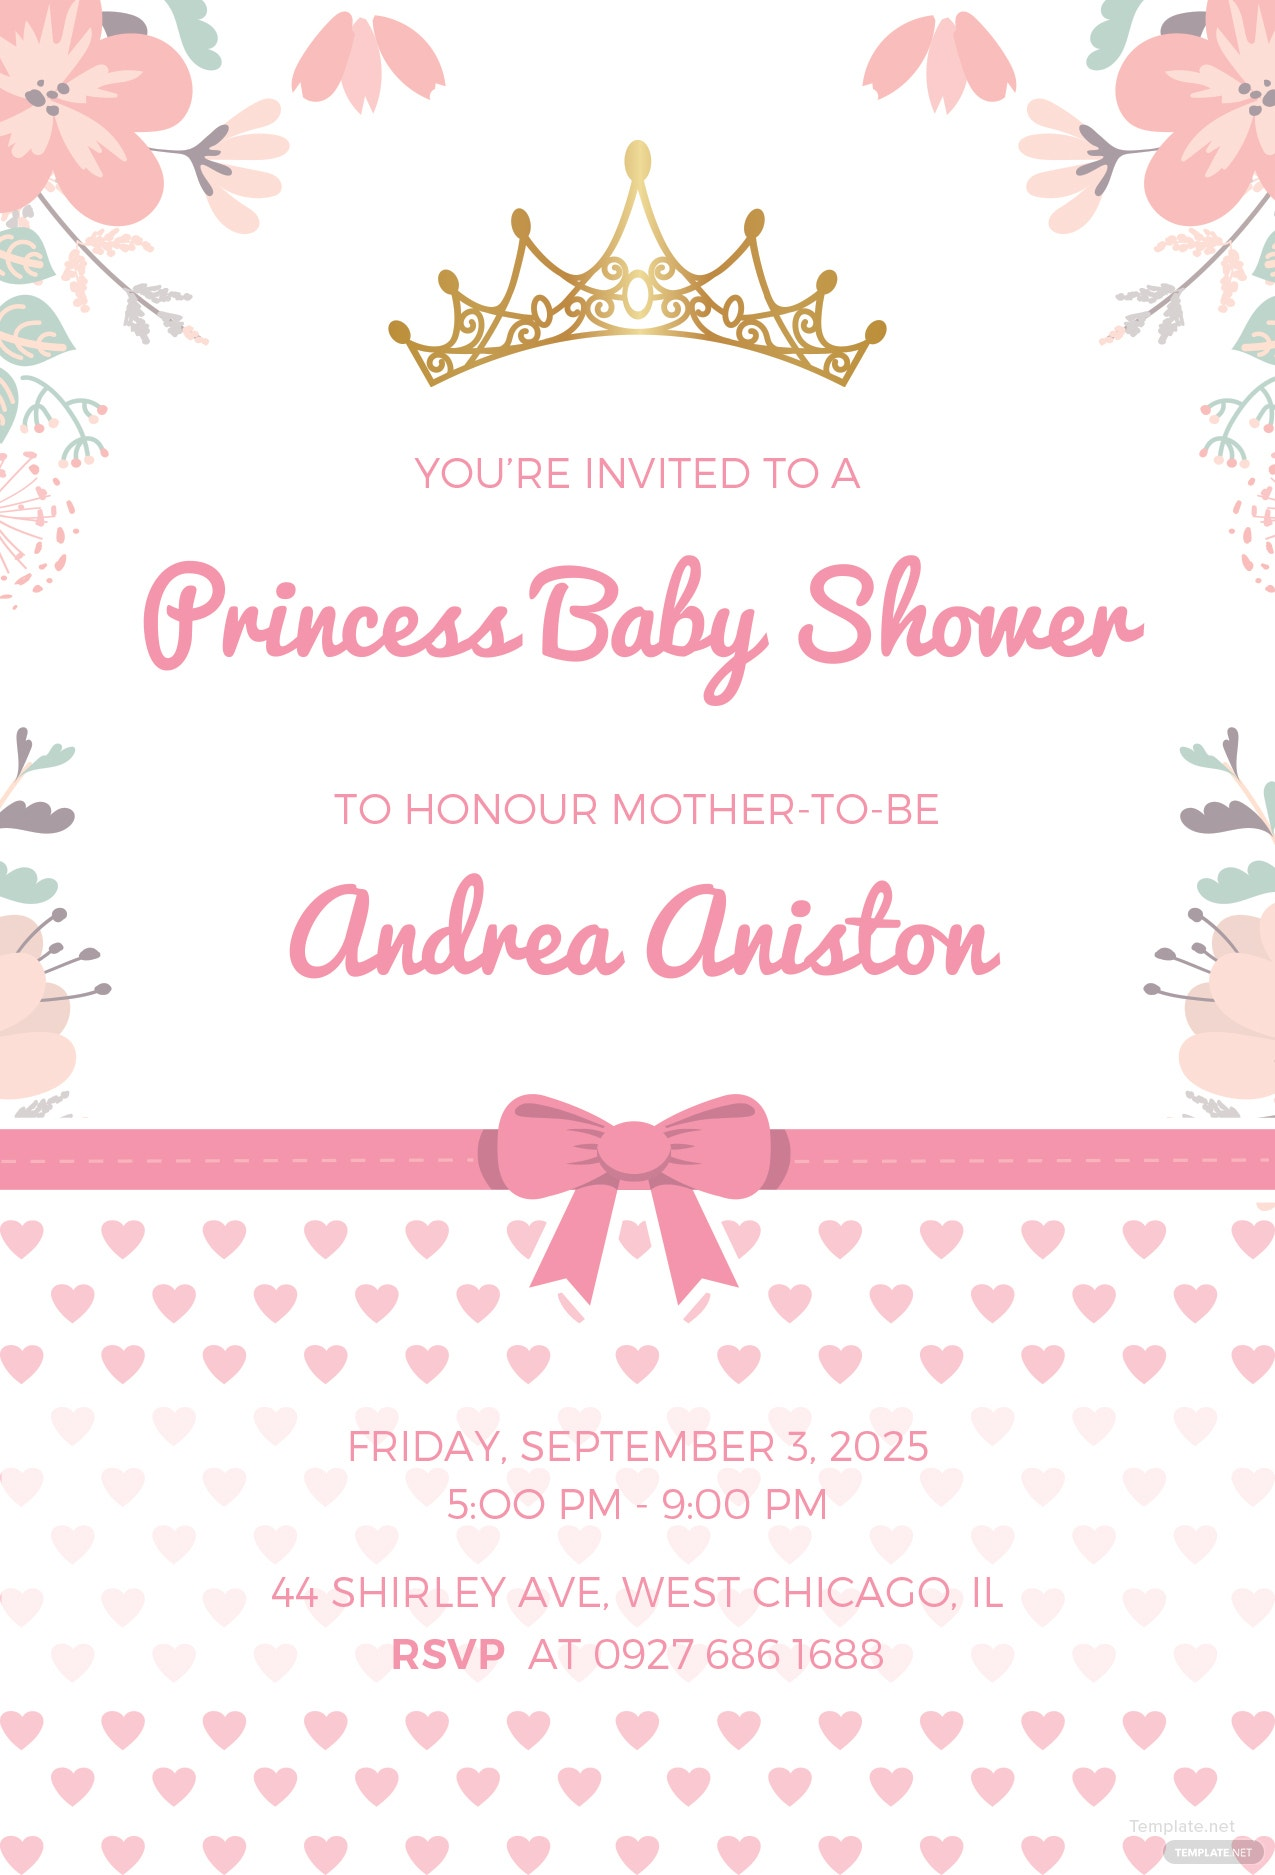 Free Princess Baby Shower Invitation Template in Microsoft Word ...